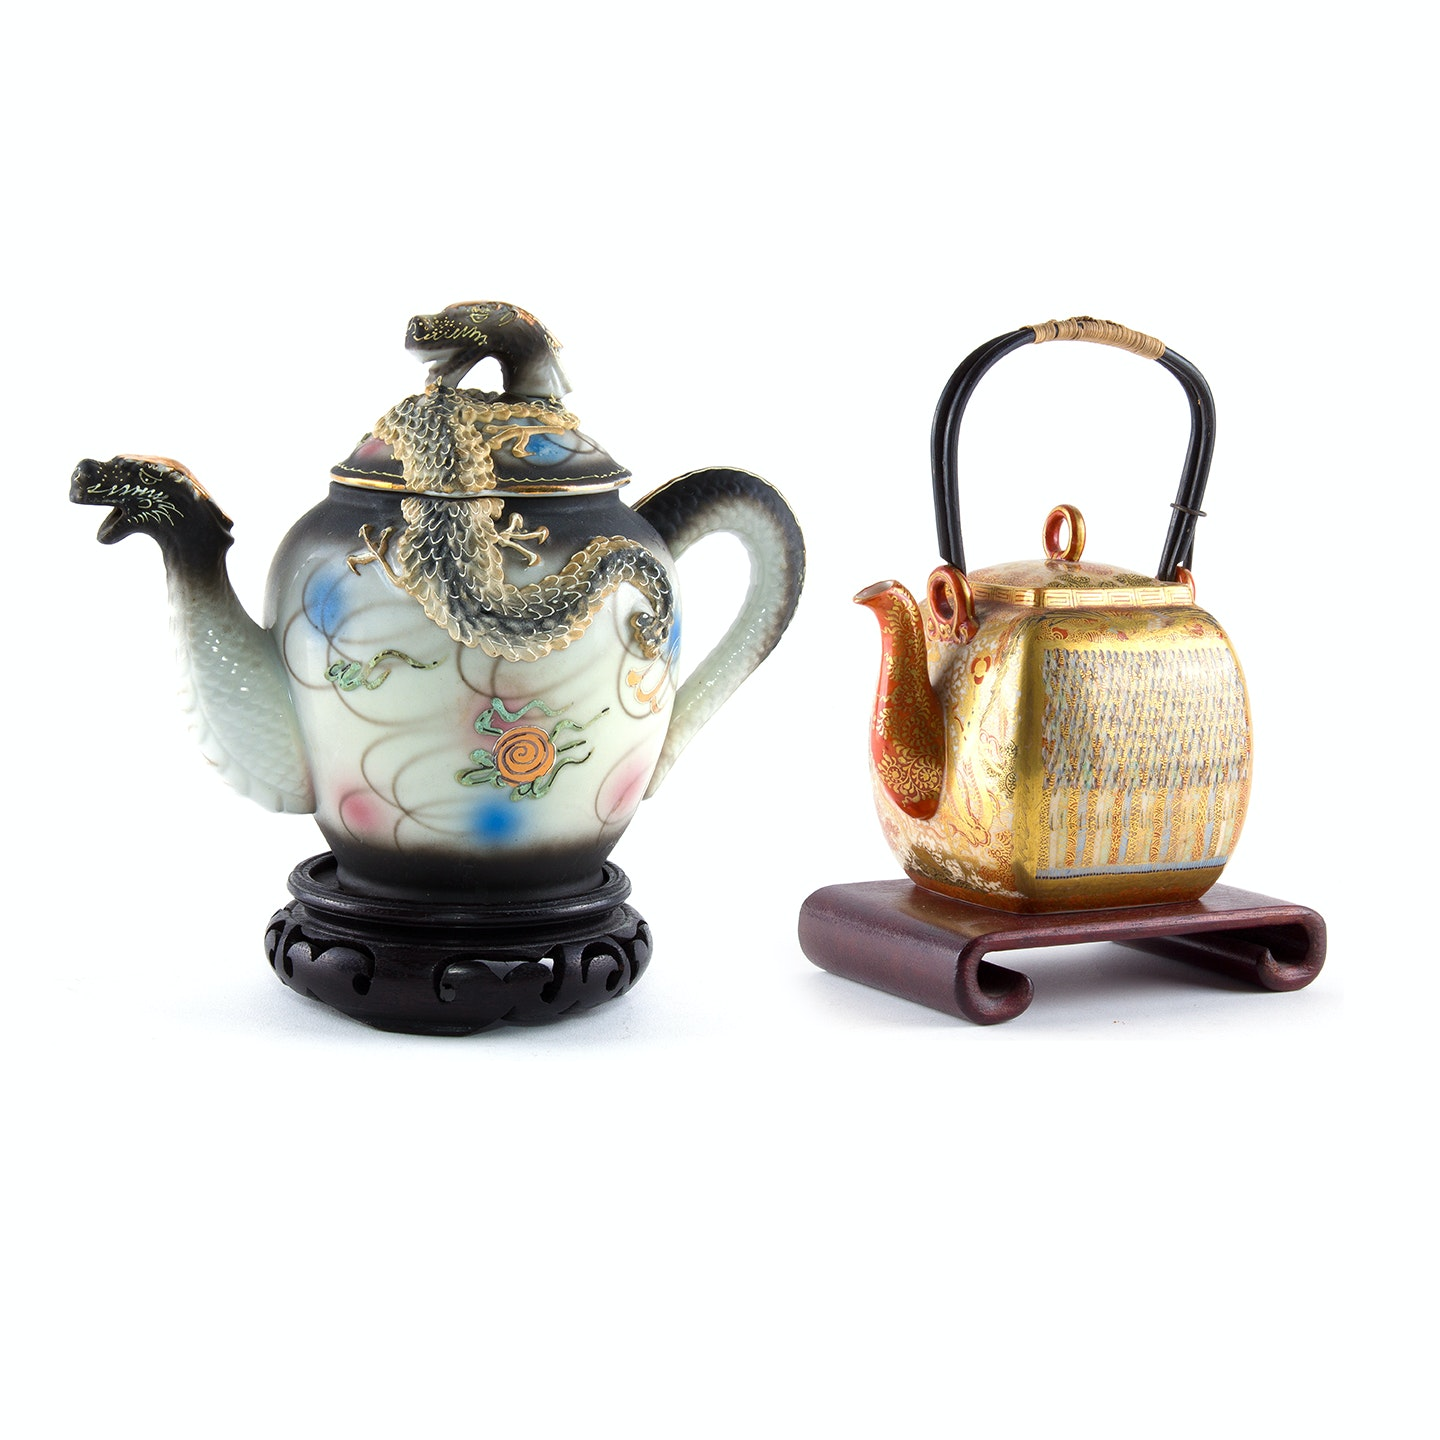 Chinese Ceramic Dragon Teapot and Japanese Kutani Teapot